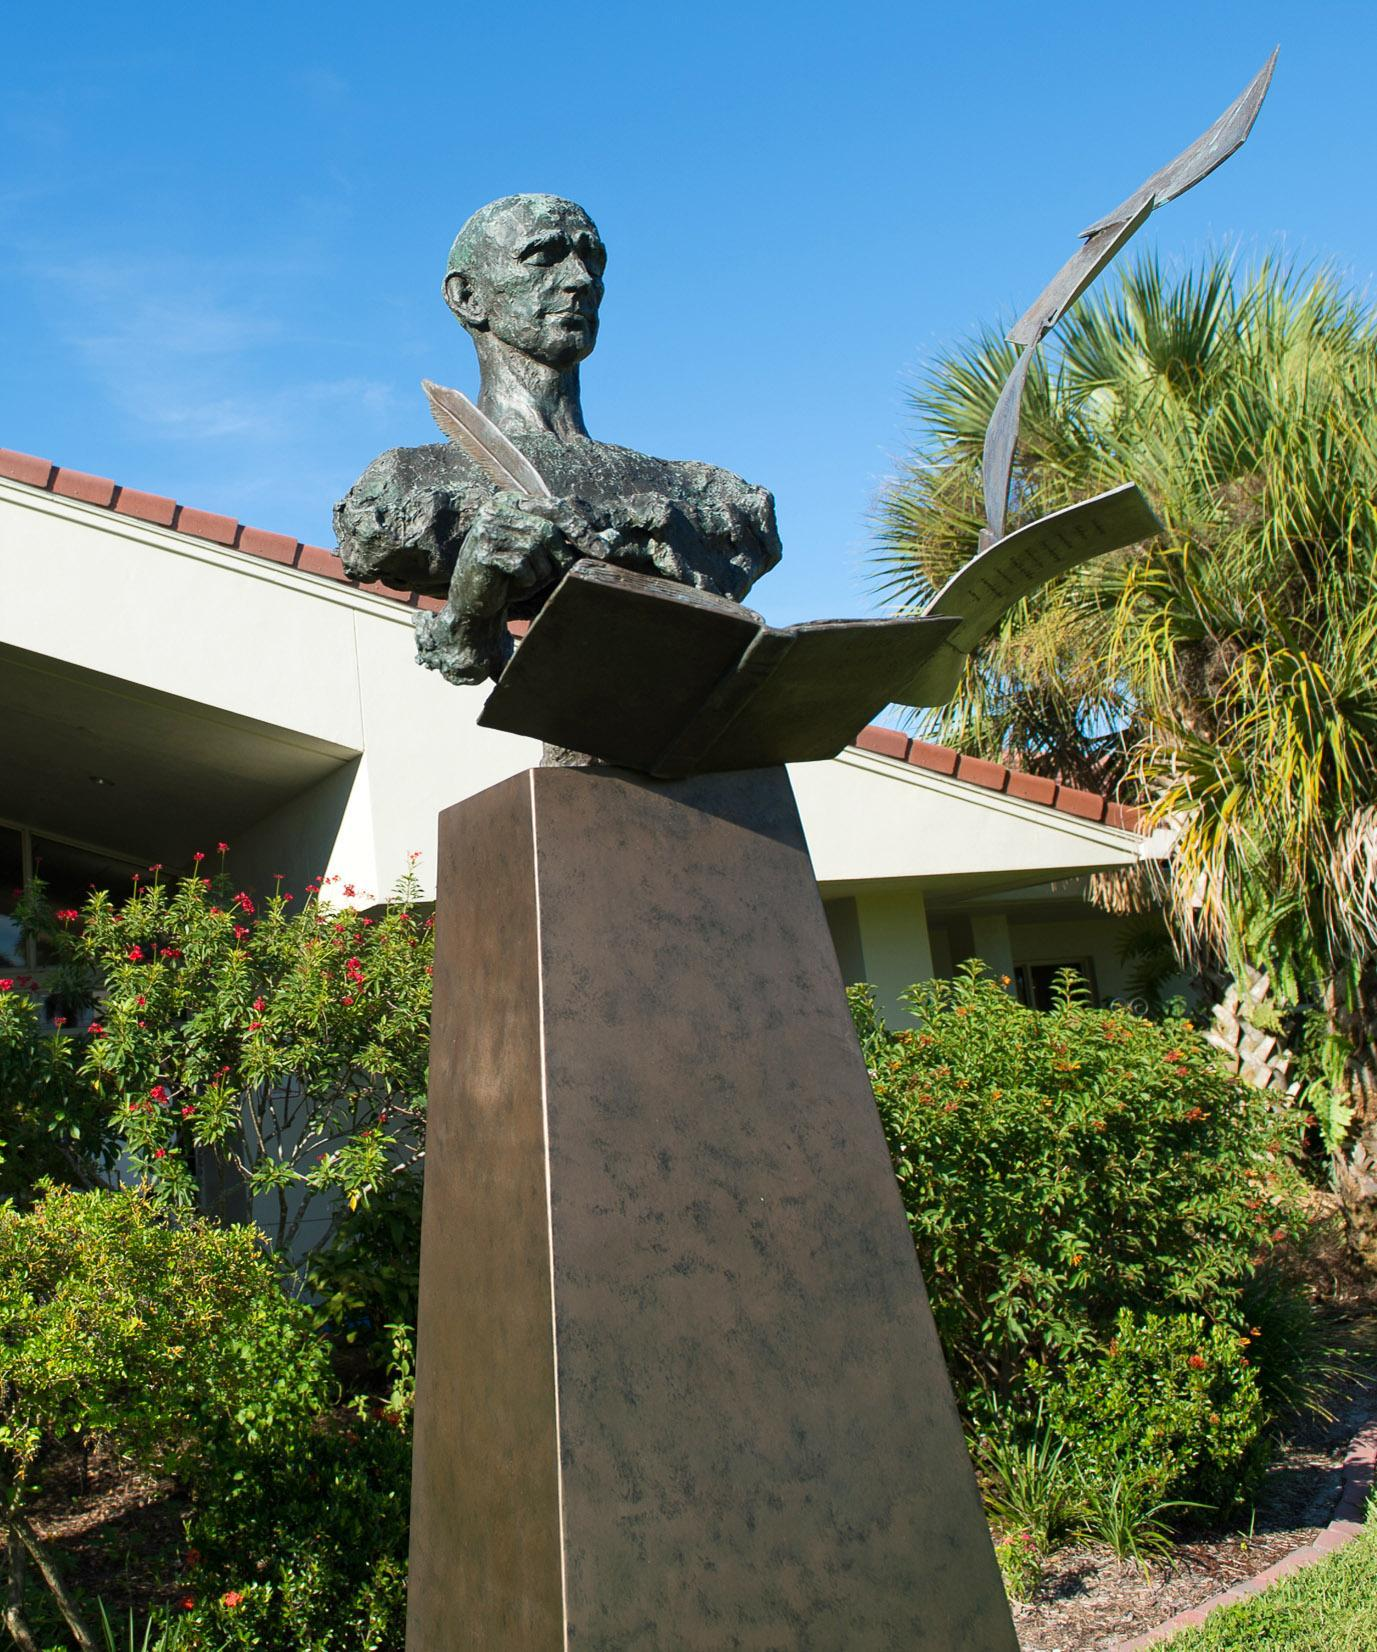 Image of the sculpture titled the poet at the Hoke Library